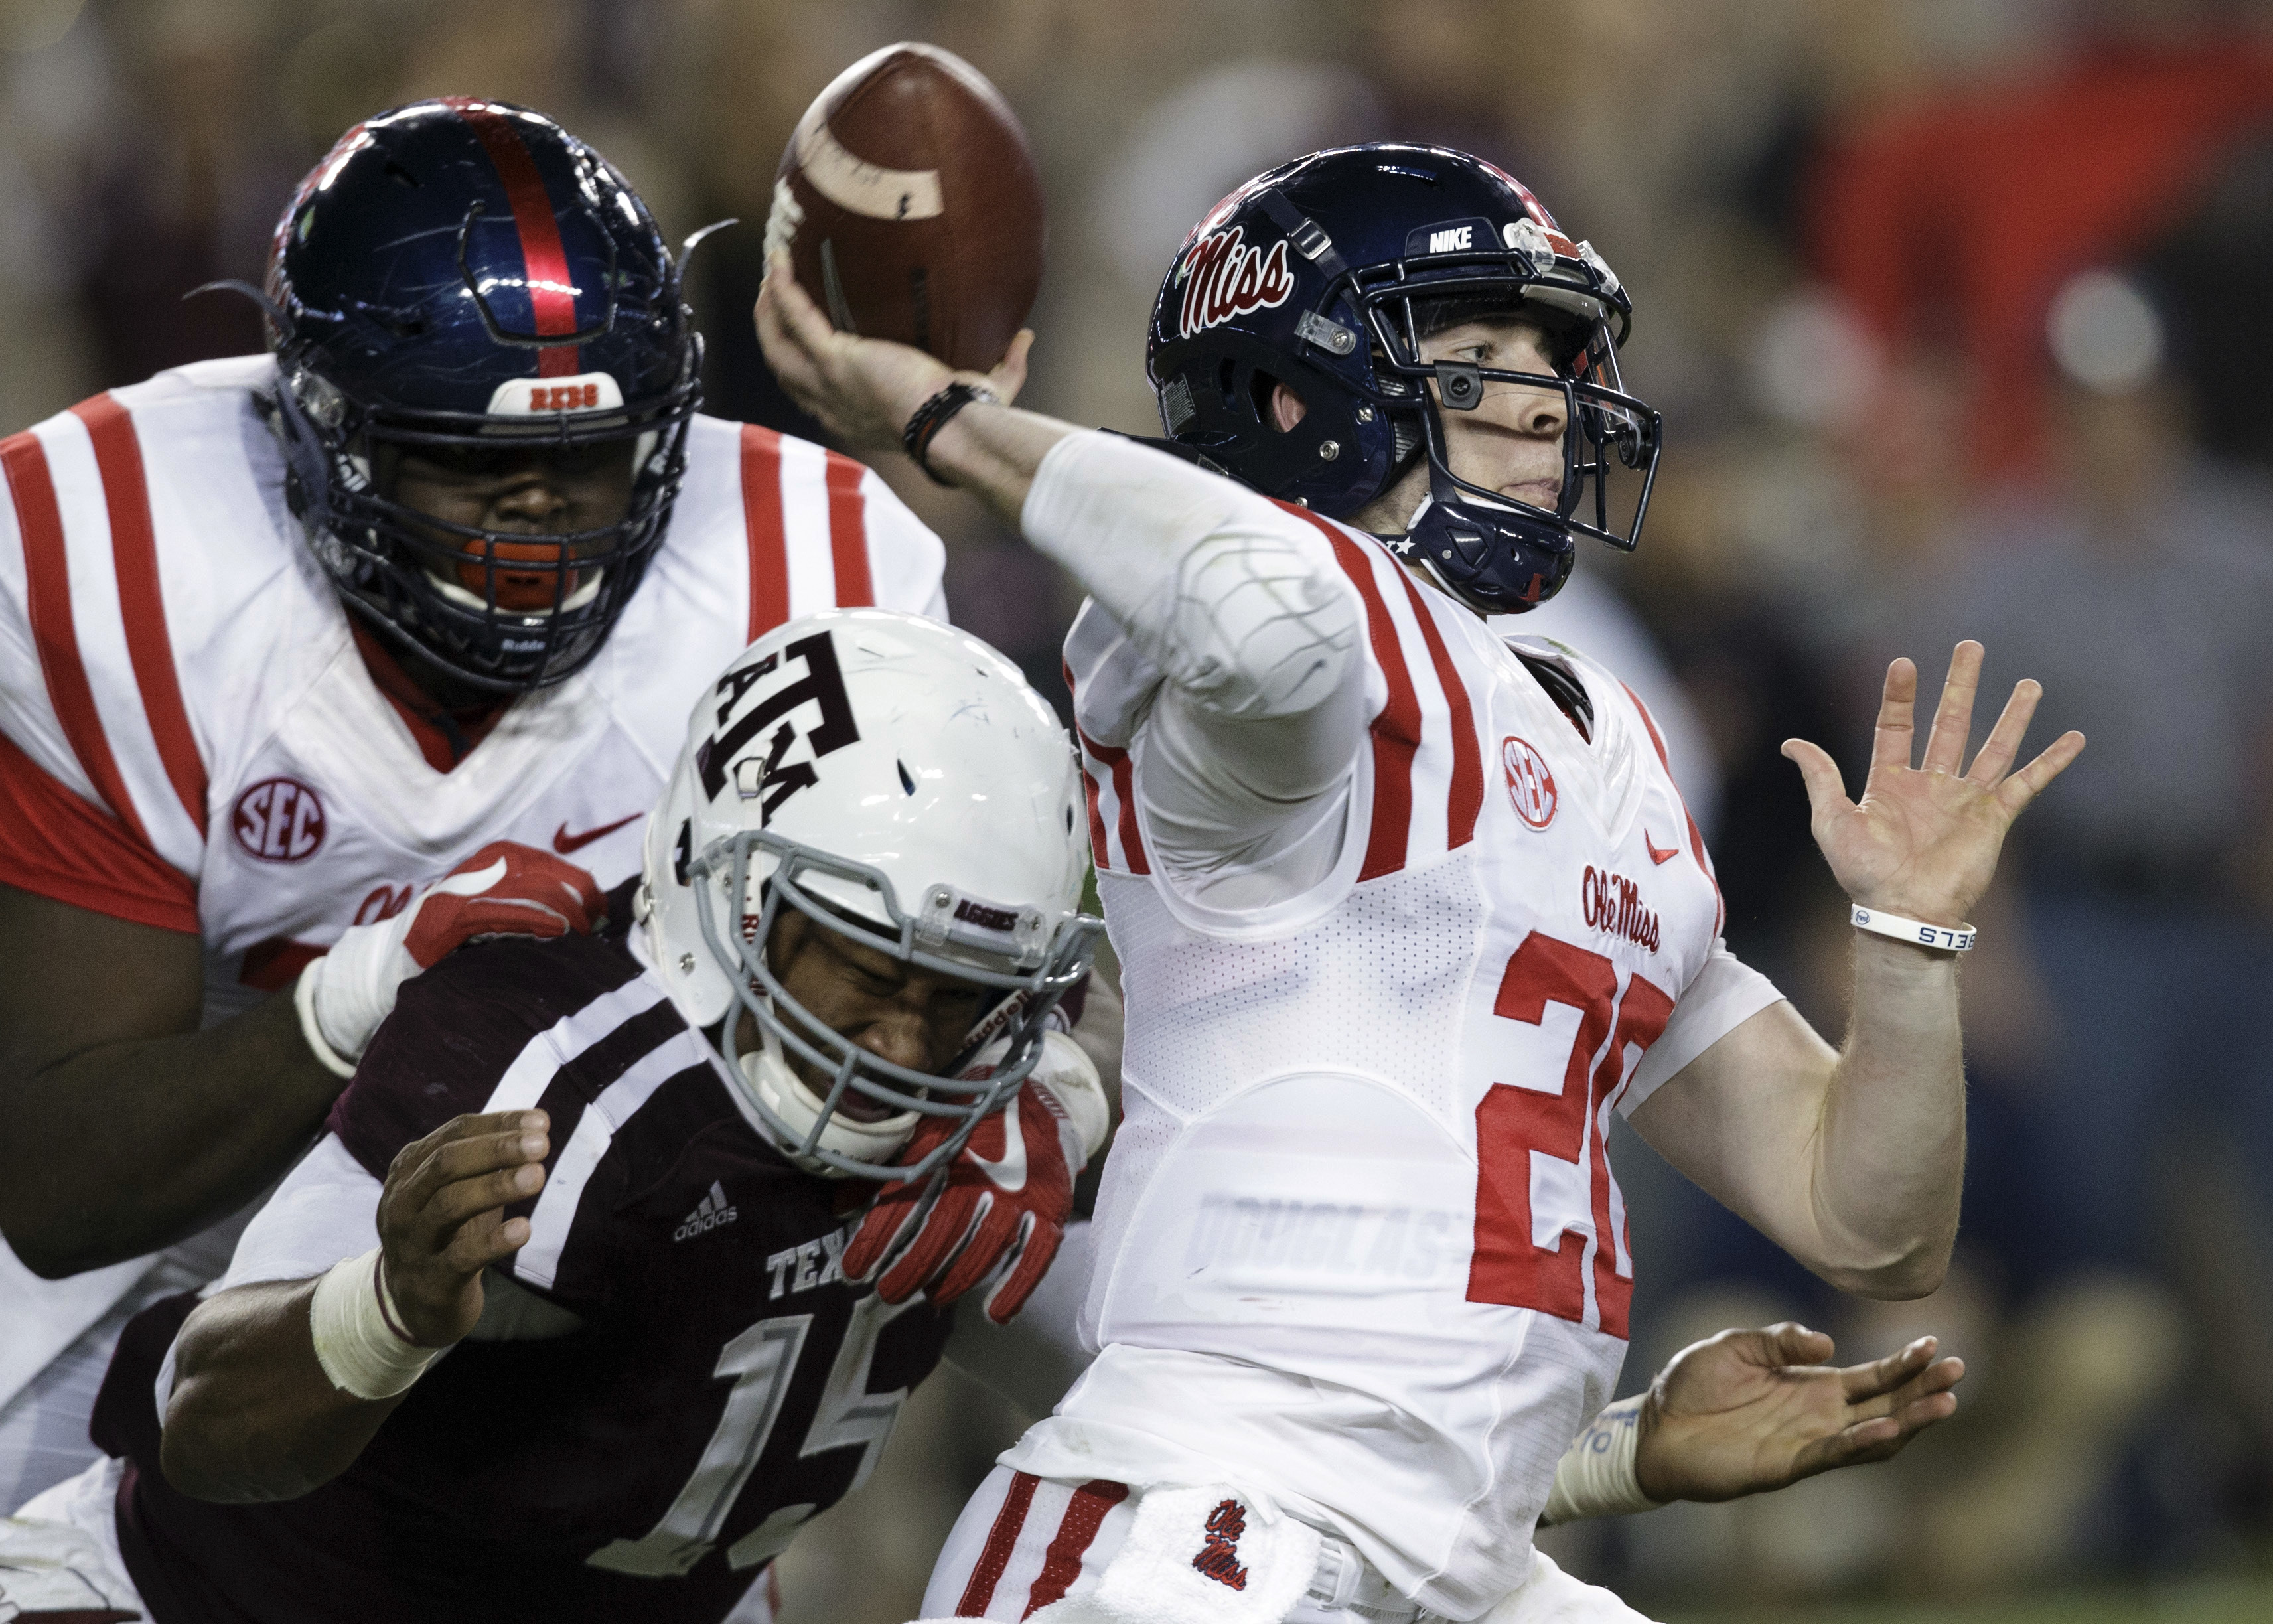 Texas A&M defensive lineman Myles Garrett (15) pressures Mississippi quarterback Shea Patterson (20) during the second quarter of an NCAA college football game Saturday, Nov. 12, 2016, in College Station, Texas. (AP Photo/Sam Craft)